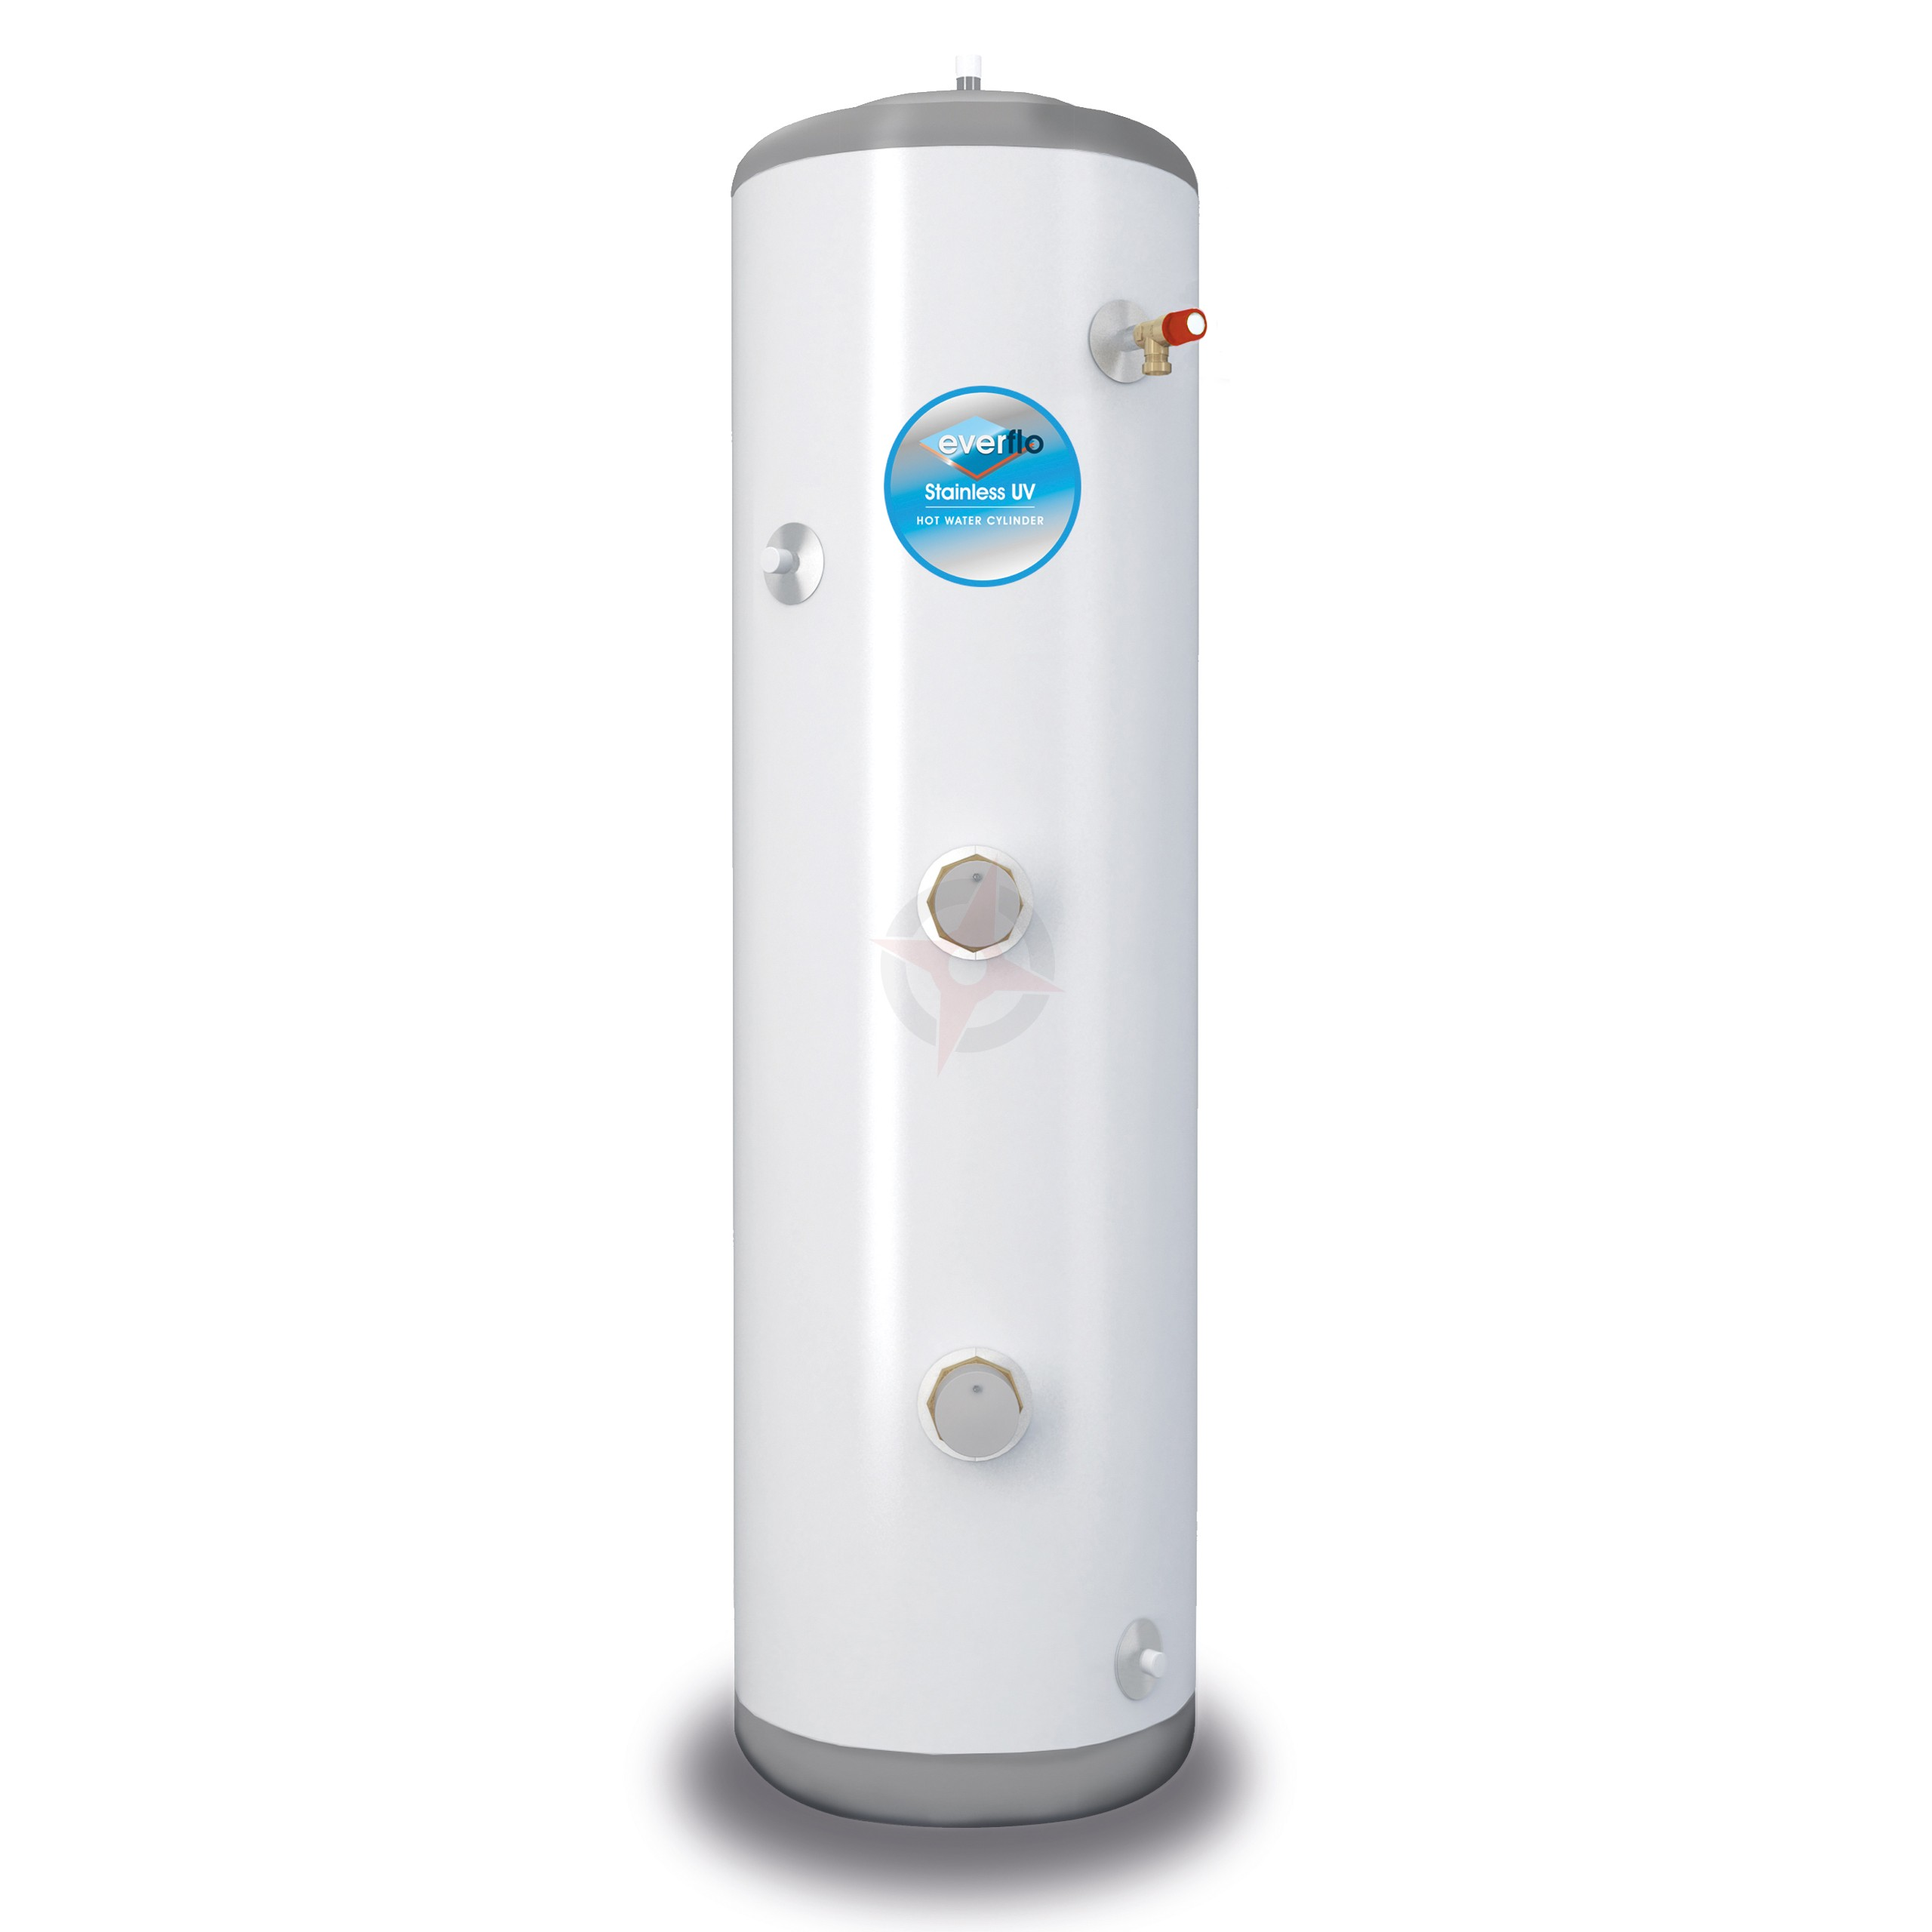 everflo Stainless 180L Slim-Fit Direct Unvented Hot Water Storage Cylinder & Kit